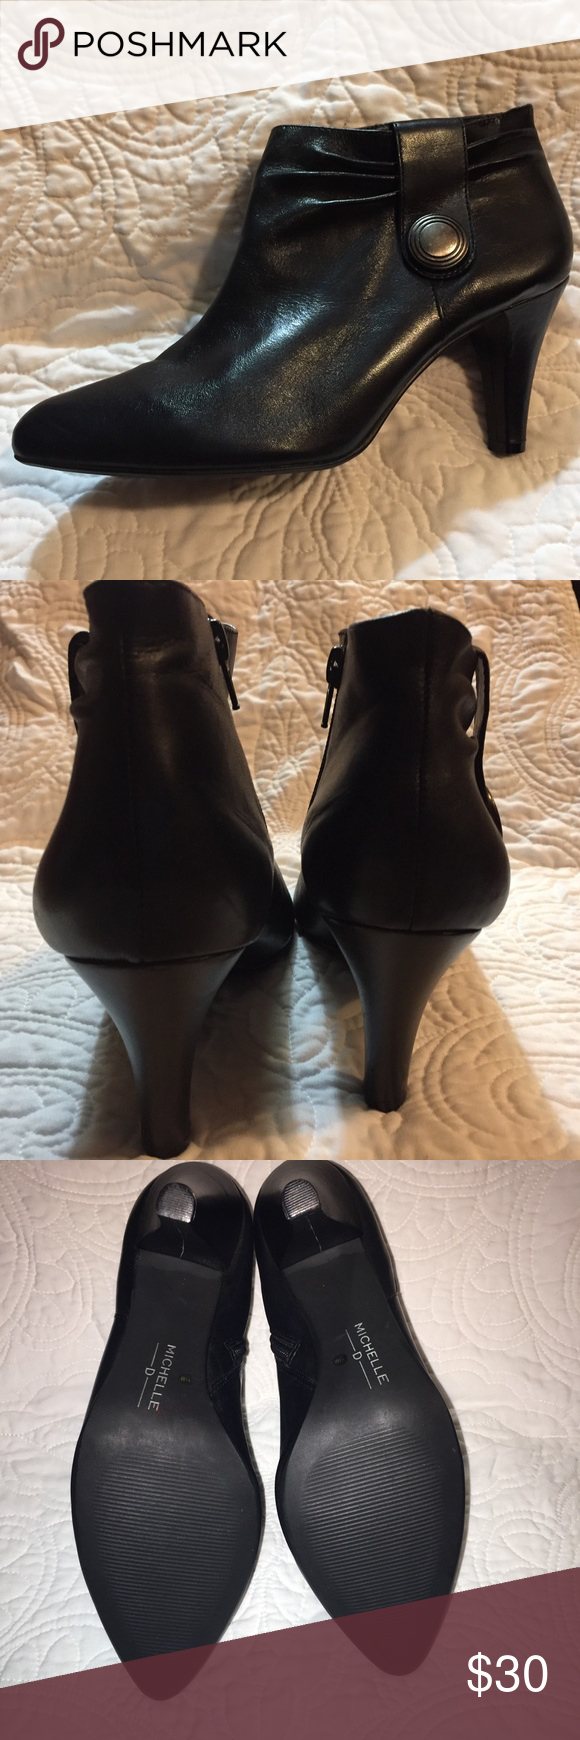 """00bf79de3118 Michelle D booties - size 11 Black leather upper with man made sole. Style   Rock 3.5"""" heel (measured from back) There is a small crack for the inside  right ..."""